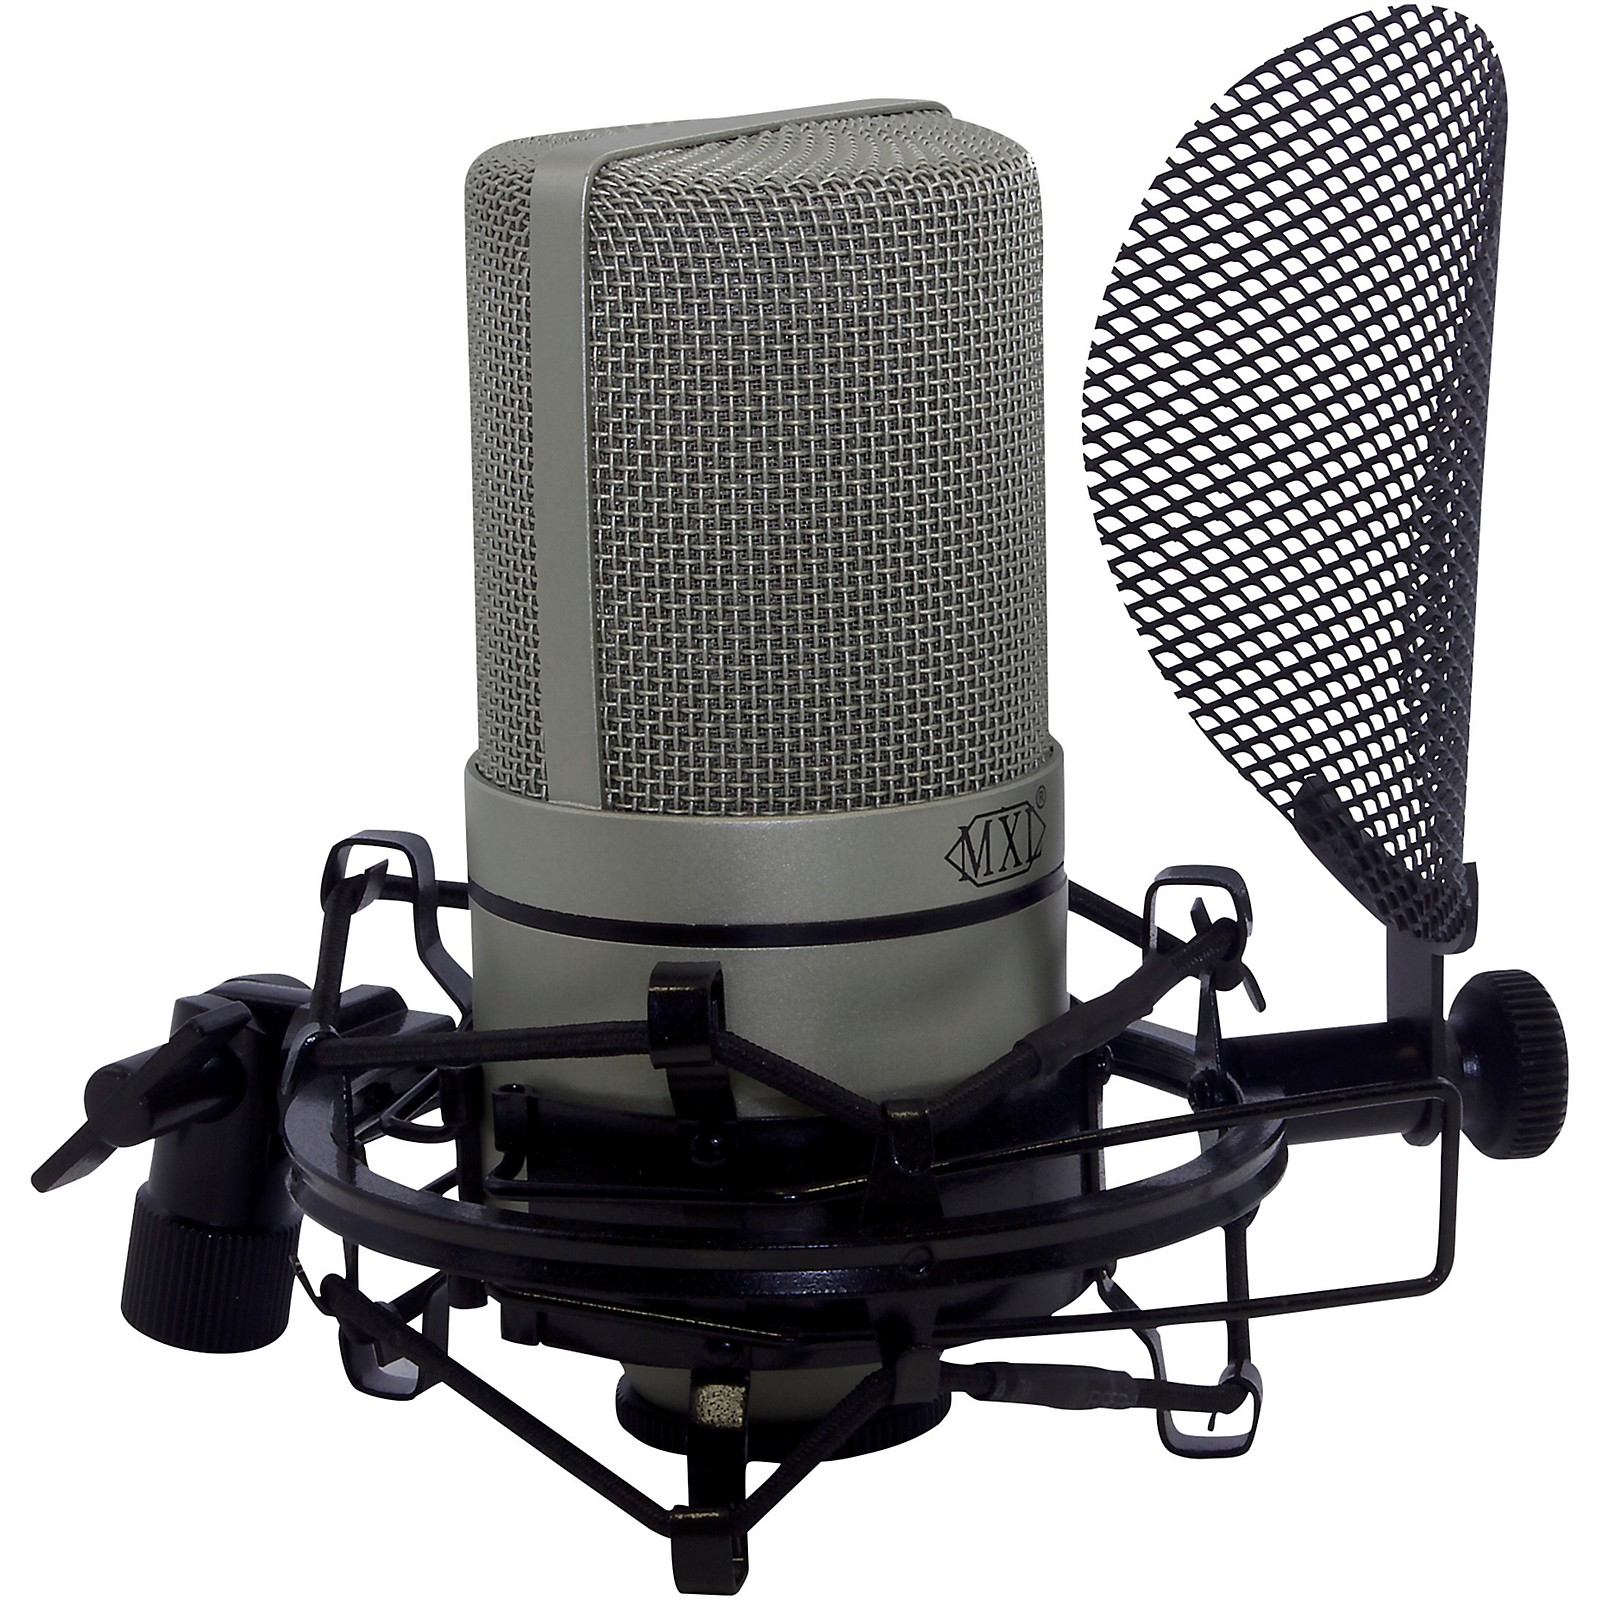 MXL Includes 990 microphone, SMP-1 PF/SM & cable